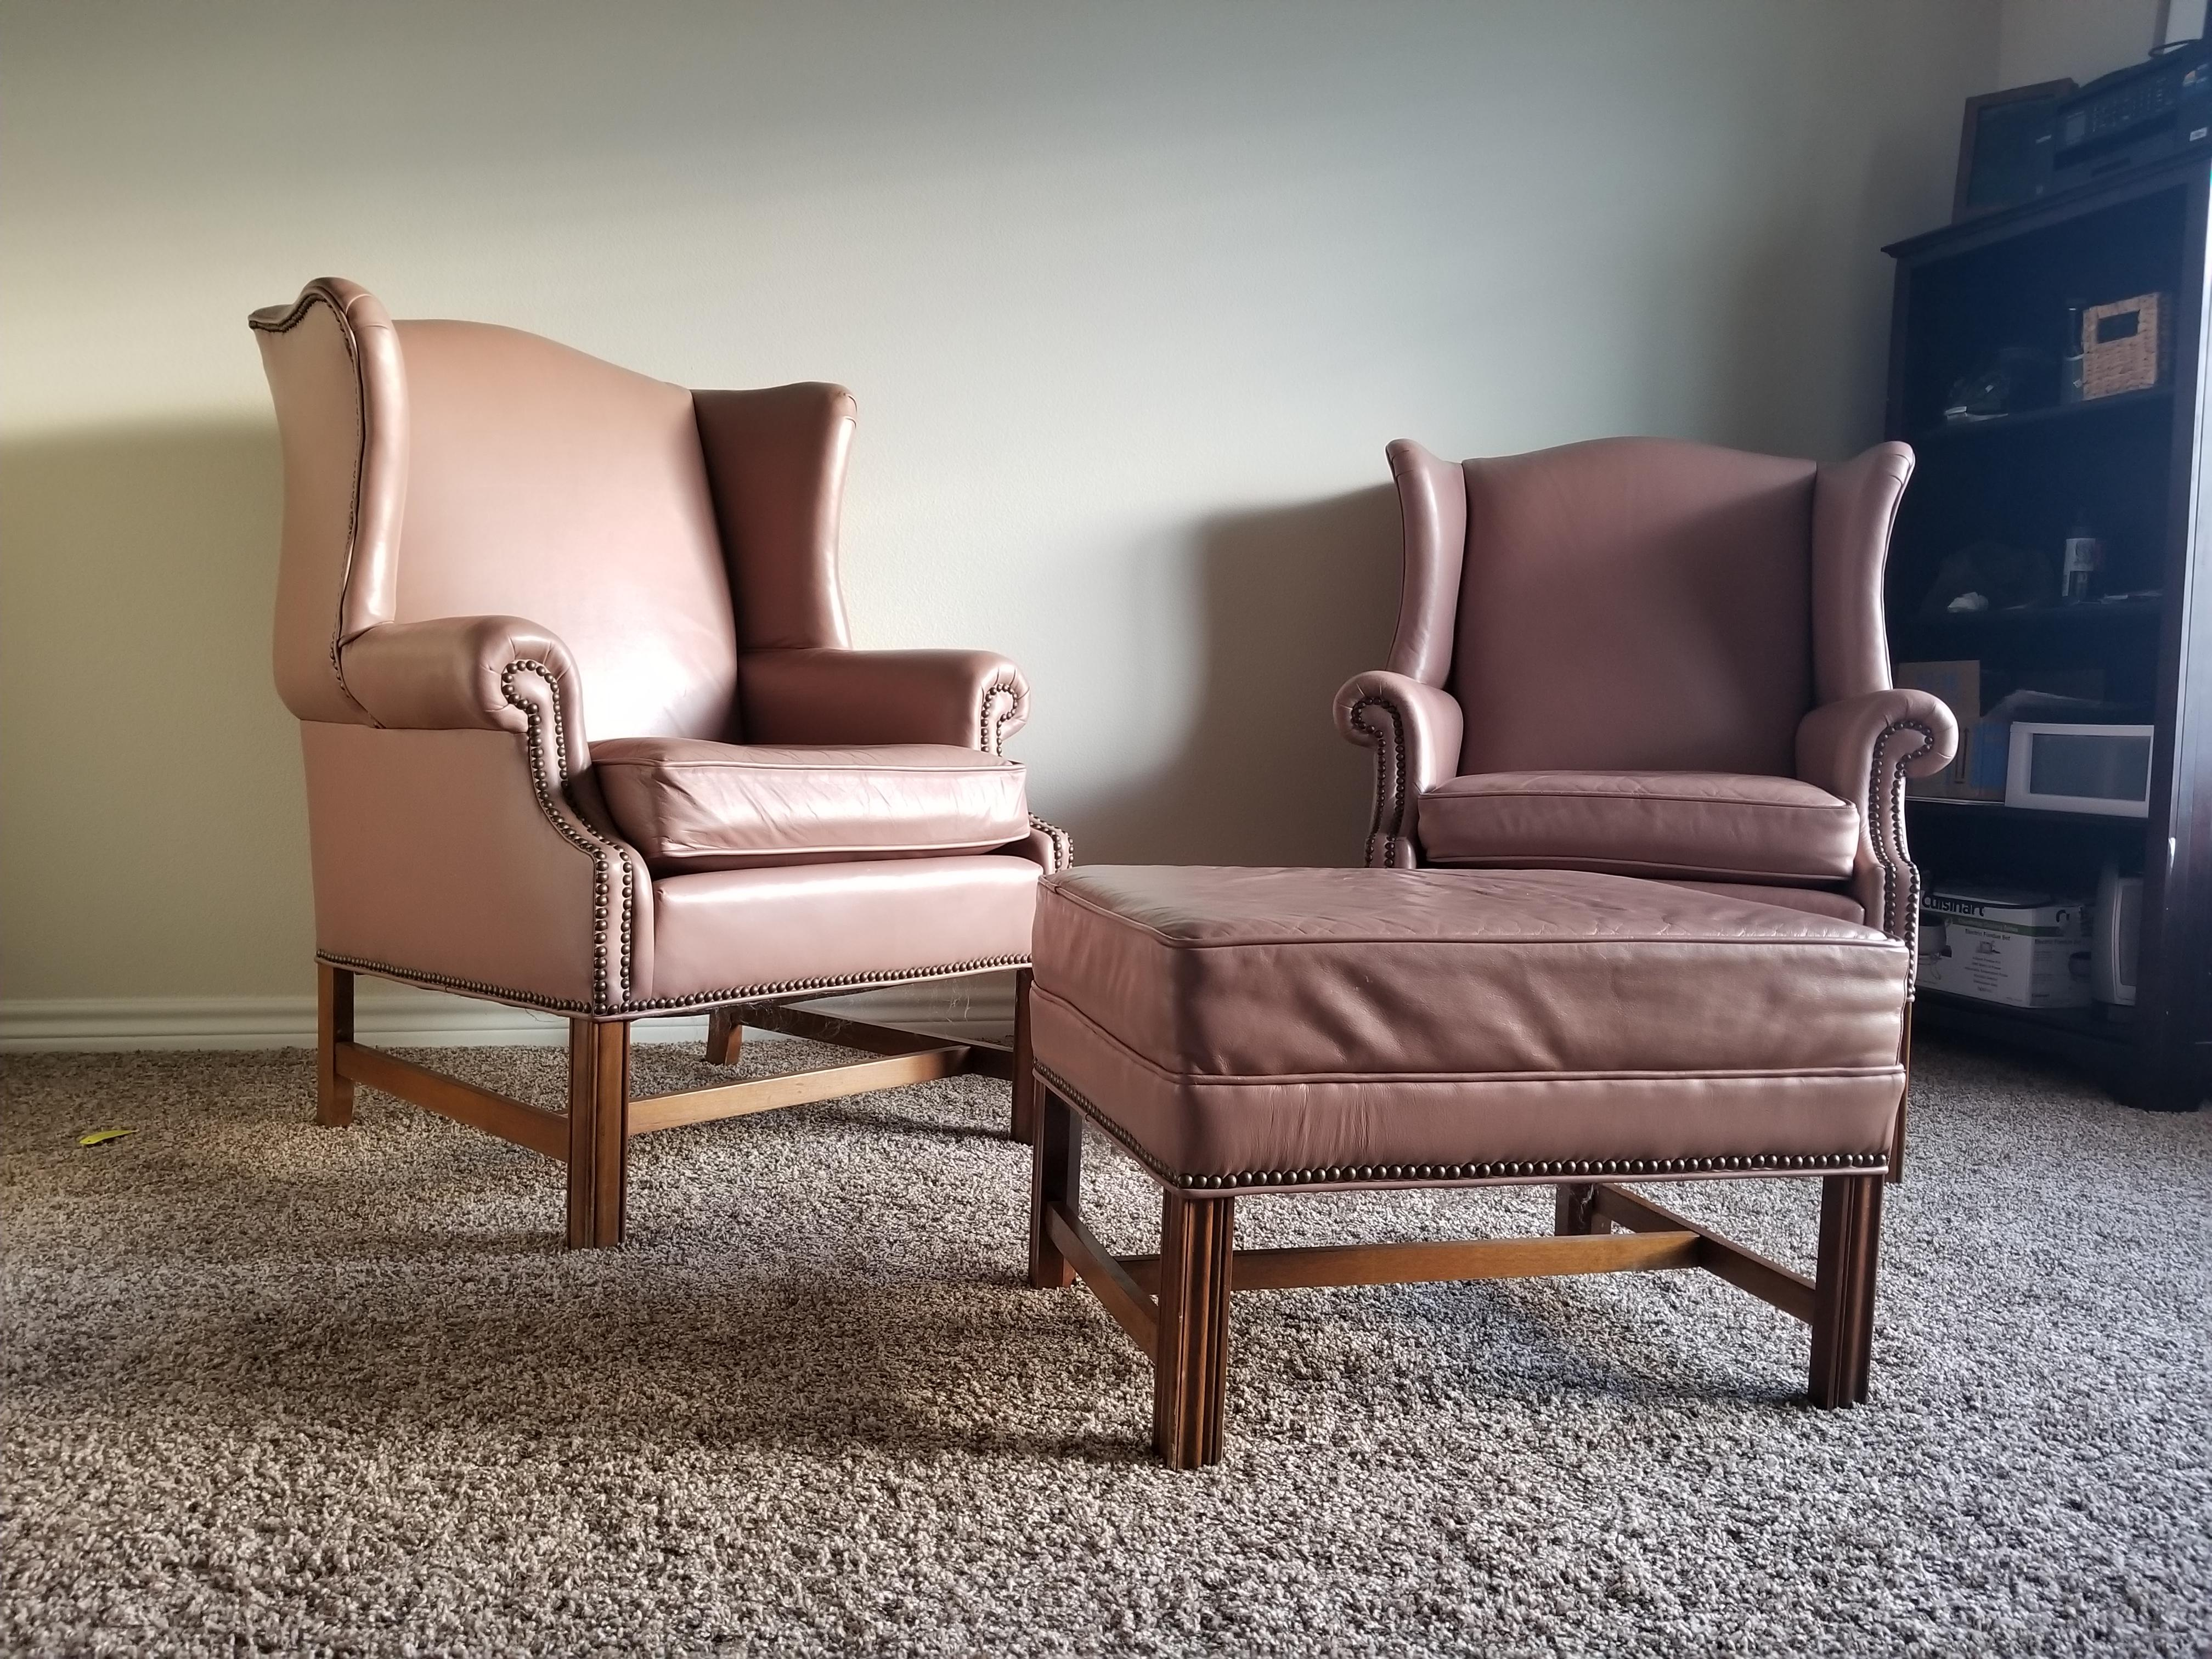 Ethan Allen Club Chairs Ethan Allen Chairs And Ottoman From Craigslist Only 100 Total